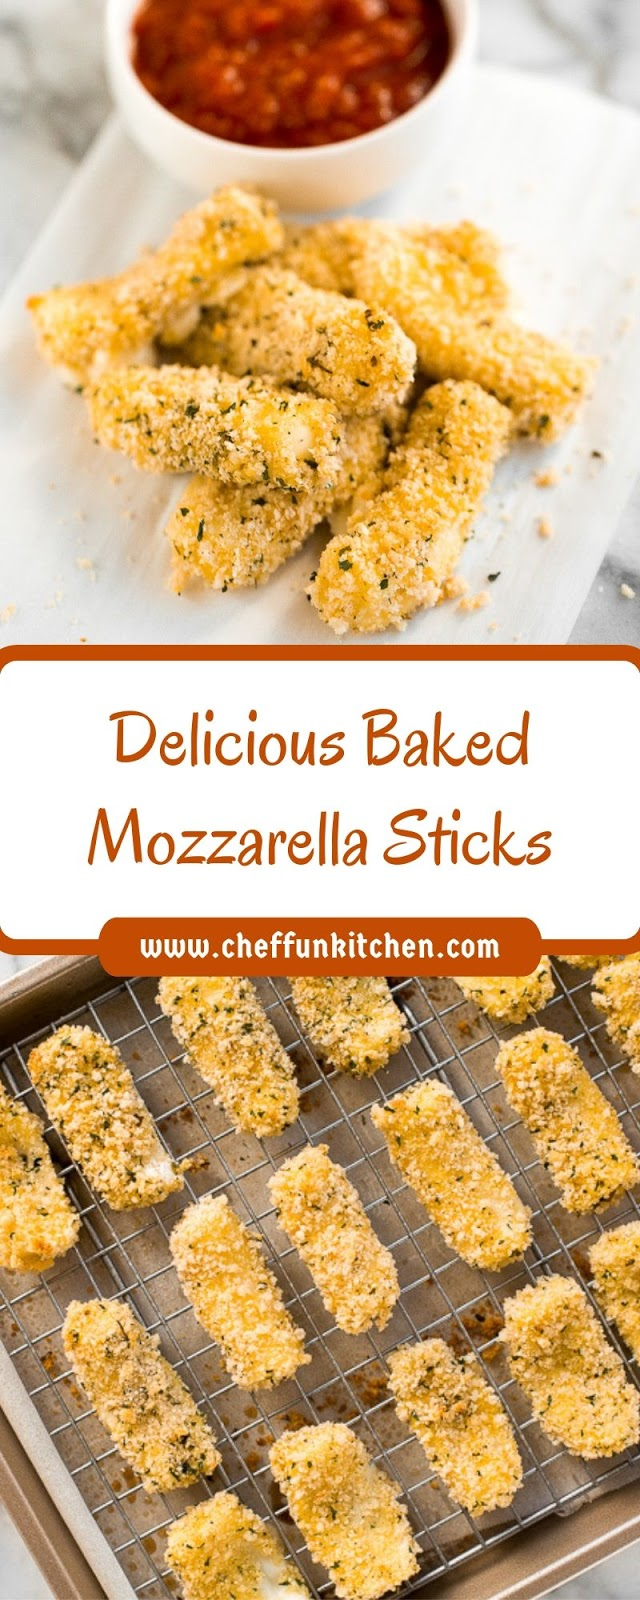 Delicious Baked Mozzarella Sticks